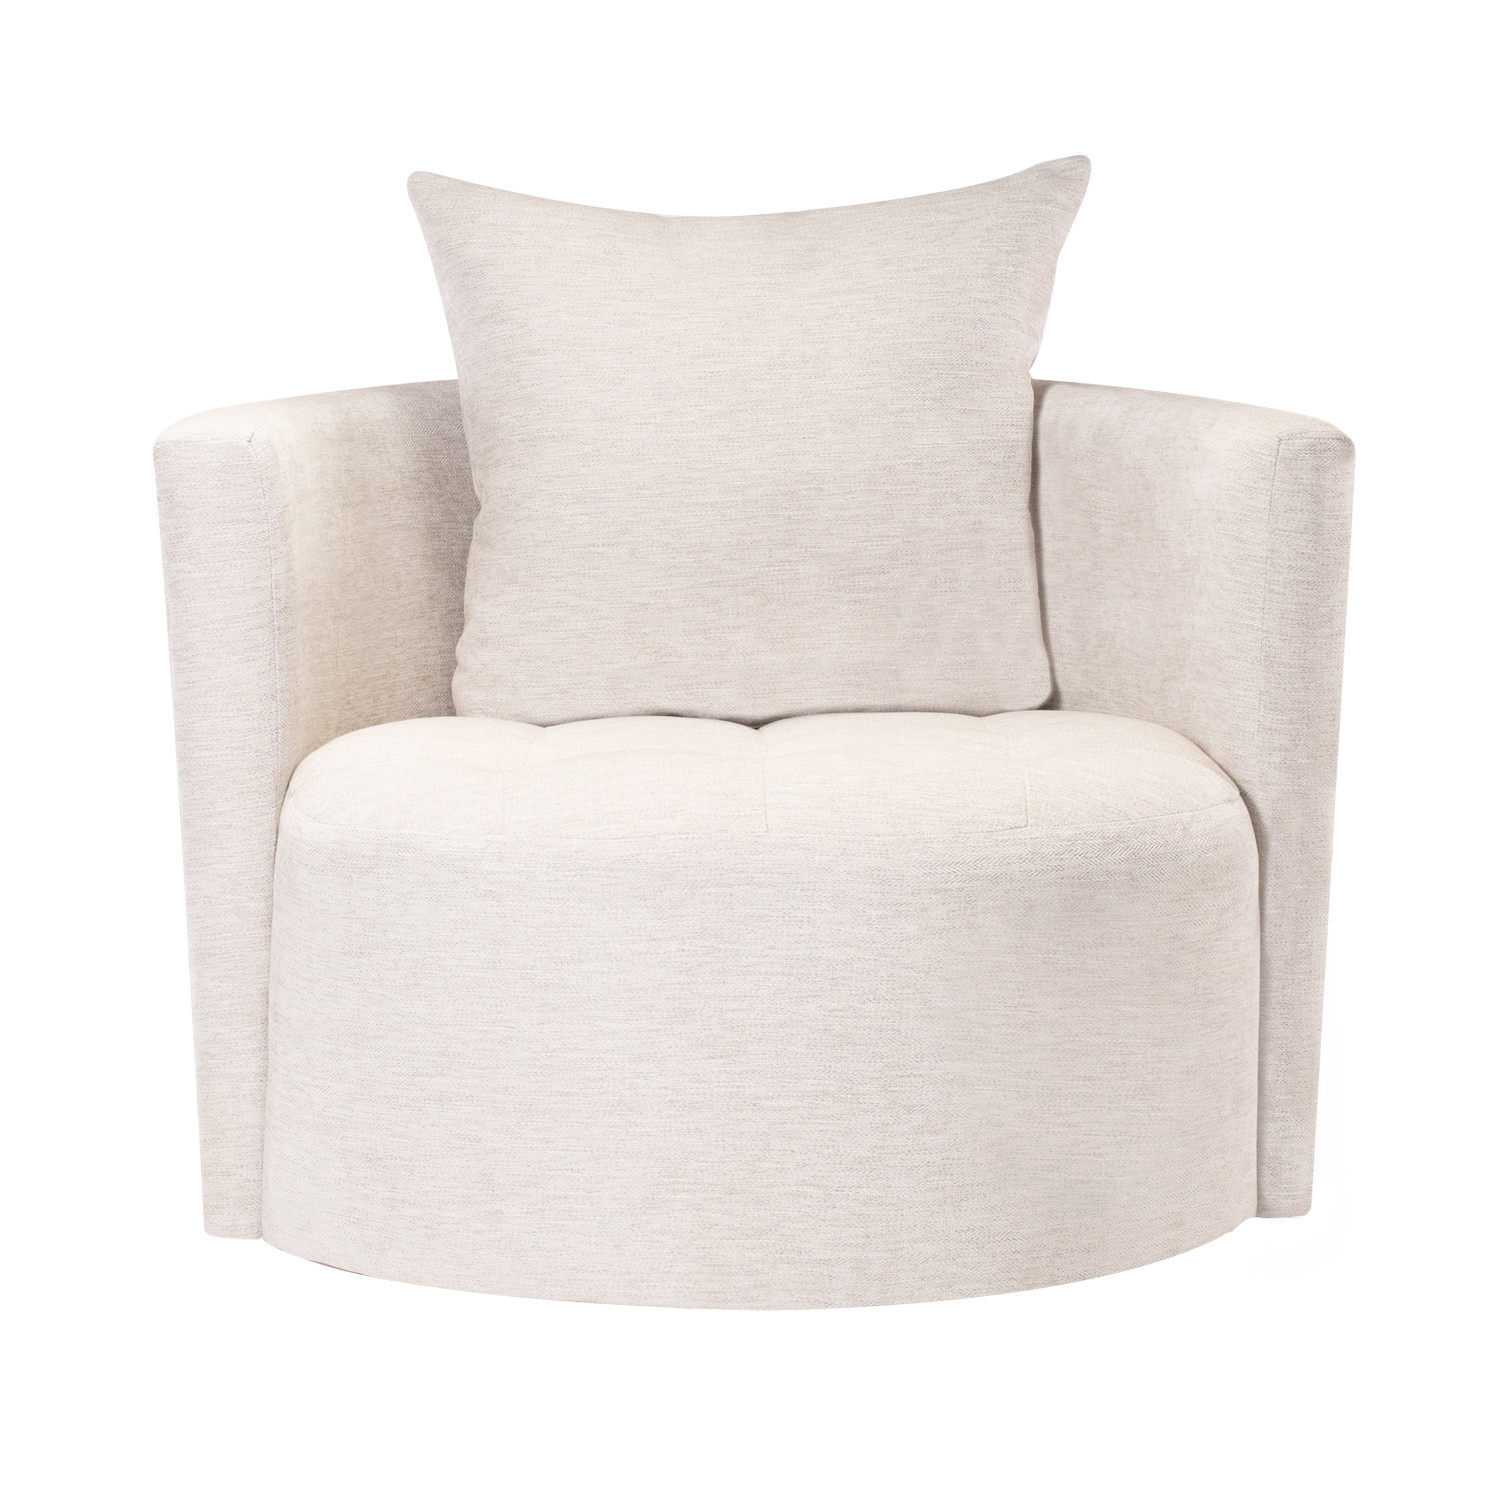 ROXIE SWIVEL CHAIR WHITESAND